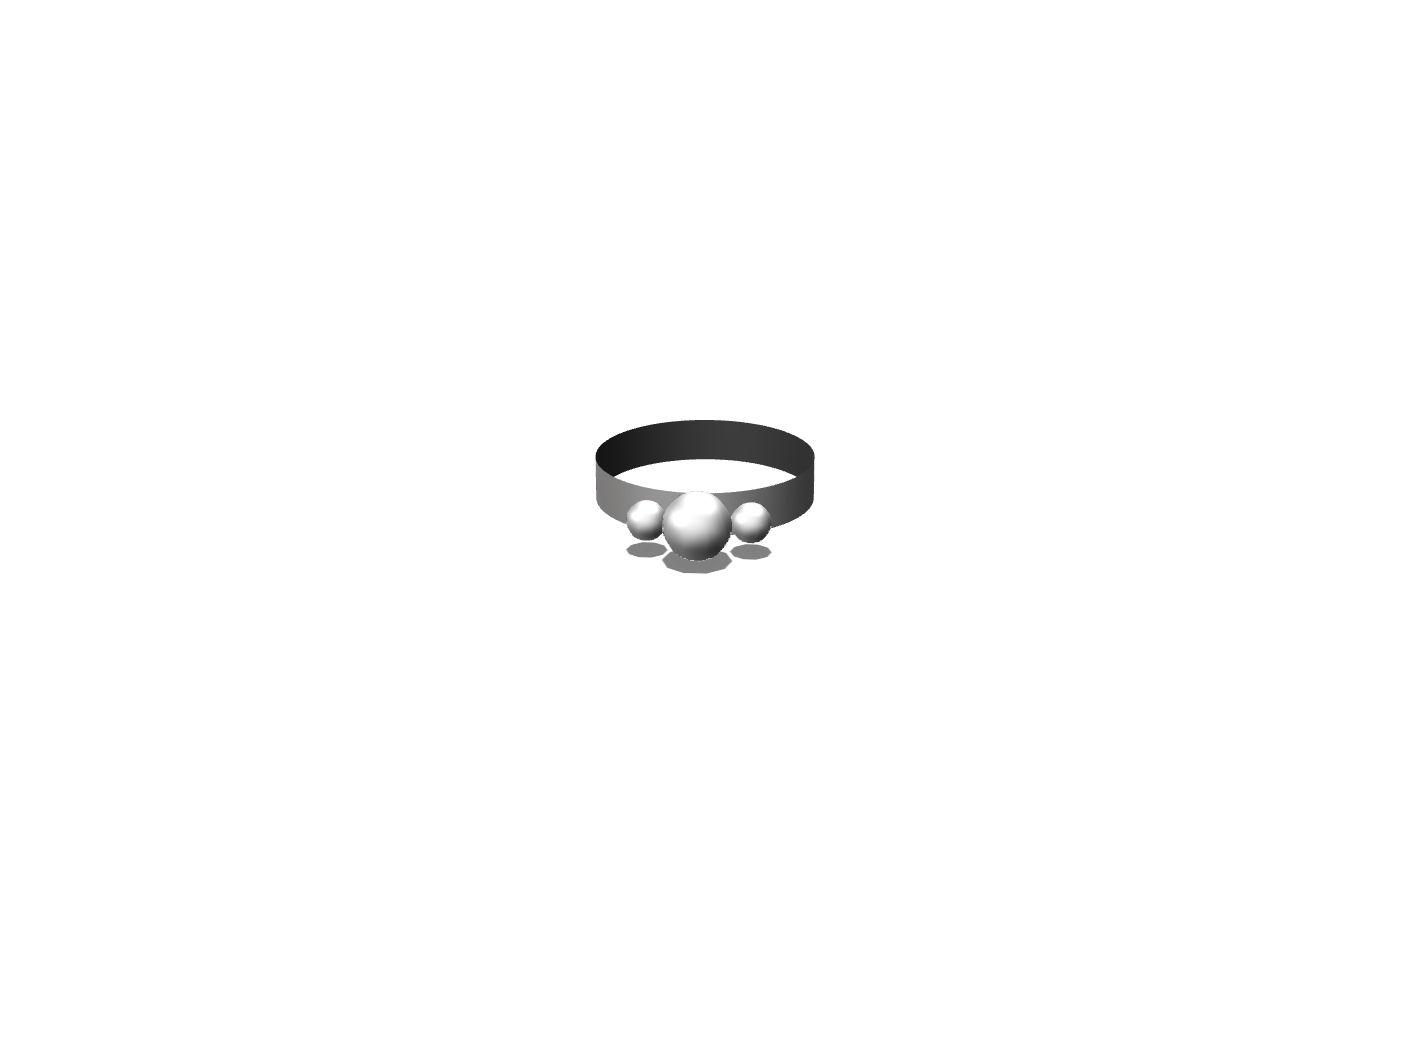 Ladies ring - 3D design by jcroake.23 Nov 22, 2017